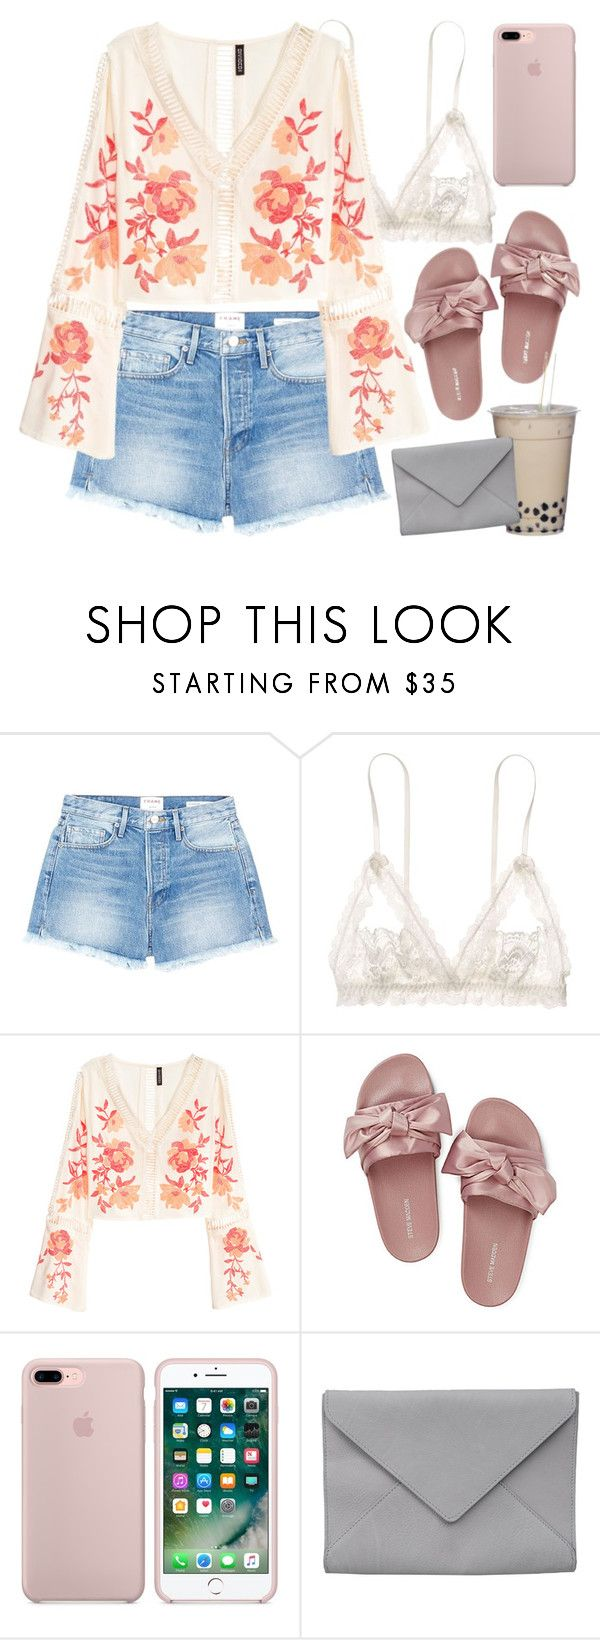 """i don't want to sing sad songs anymore"" by stxrryskies ❤ liked on Polyvore featuring Frame, Hanky Panky, Steve Madden, Ann Demeulemeester and womensFashion"